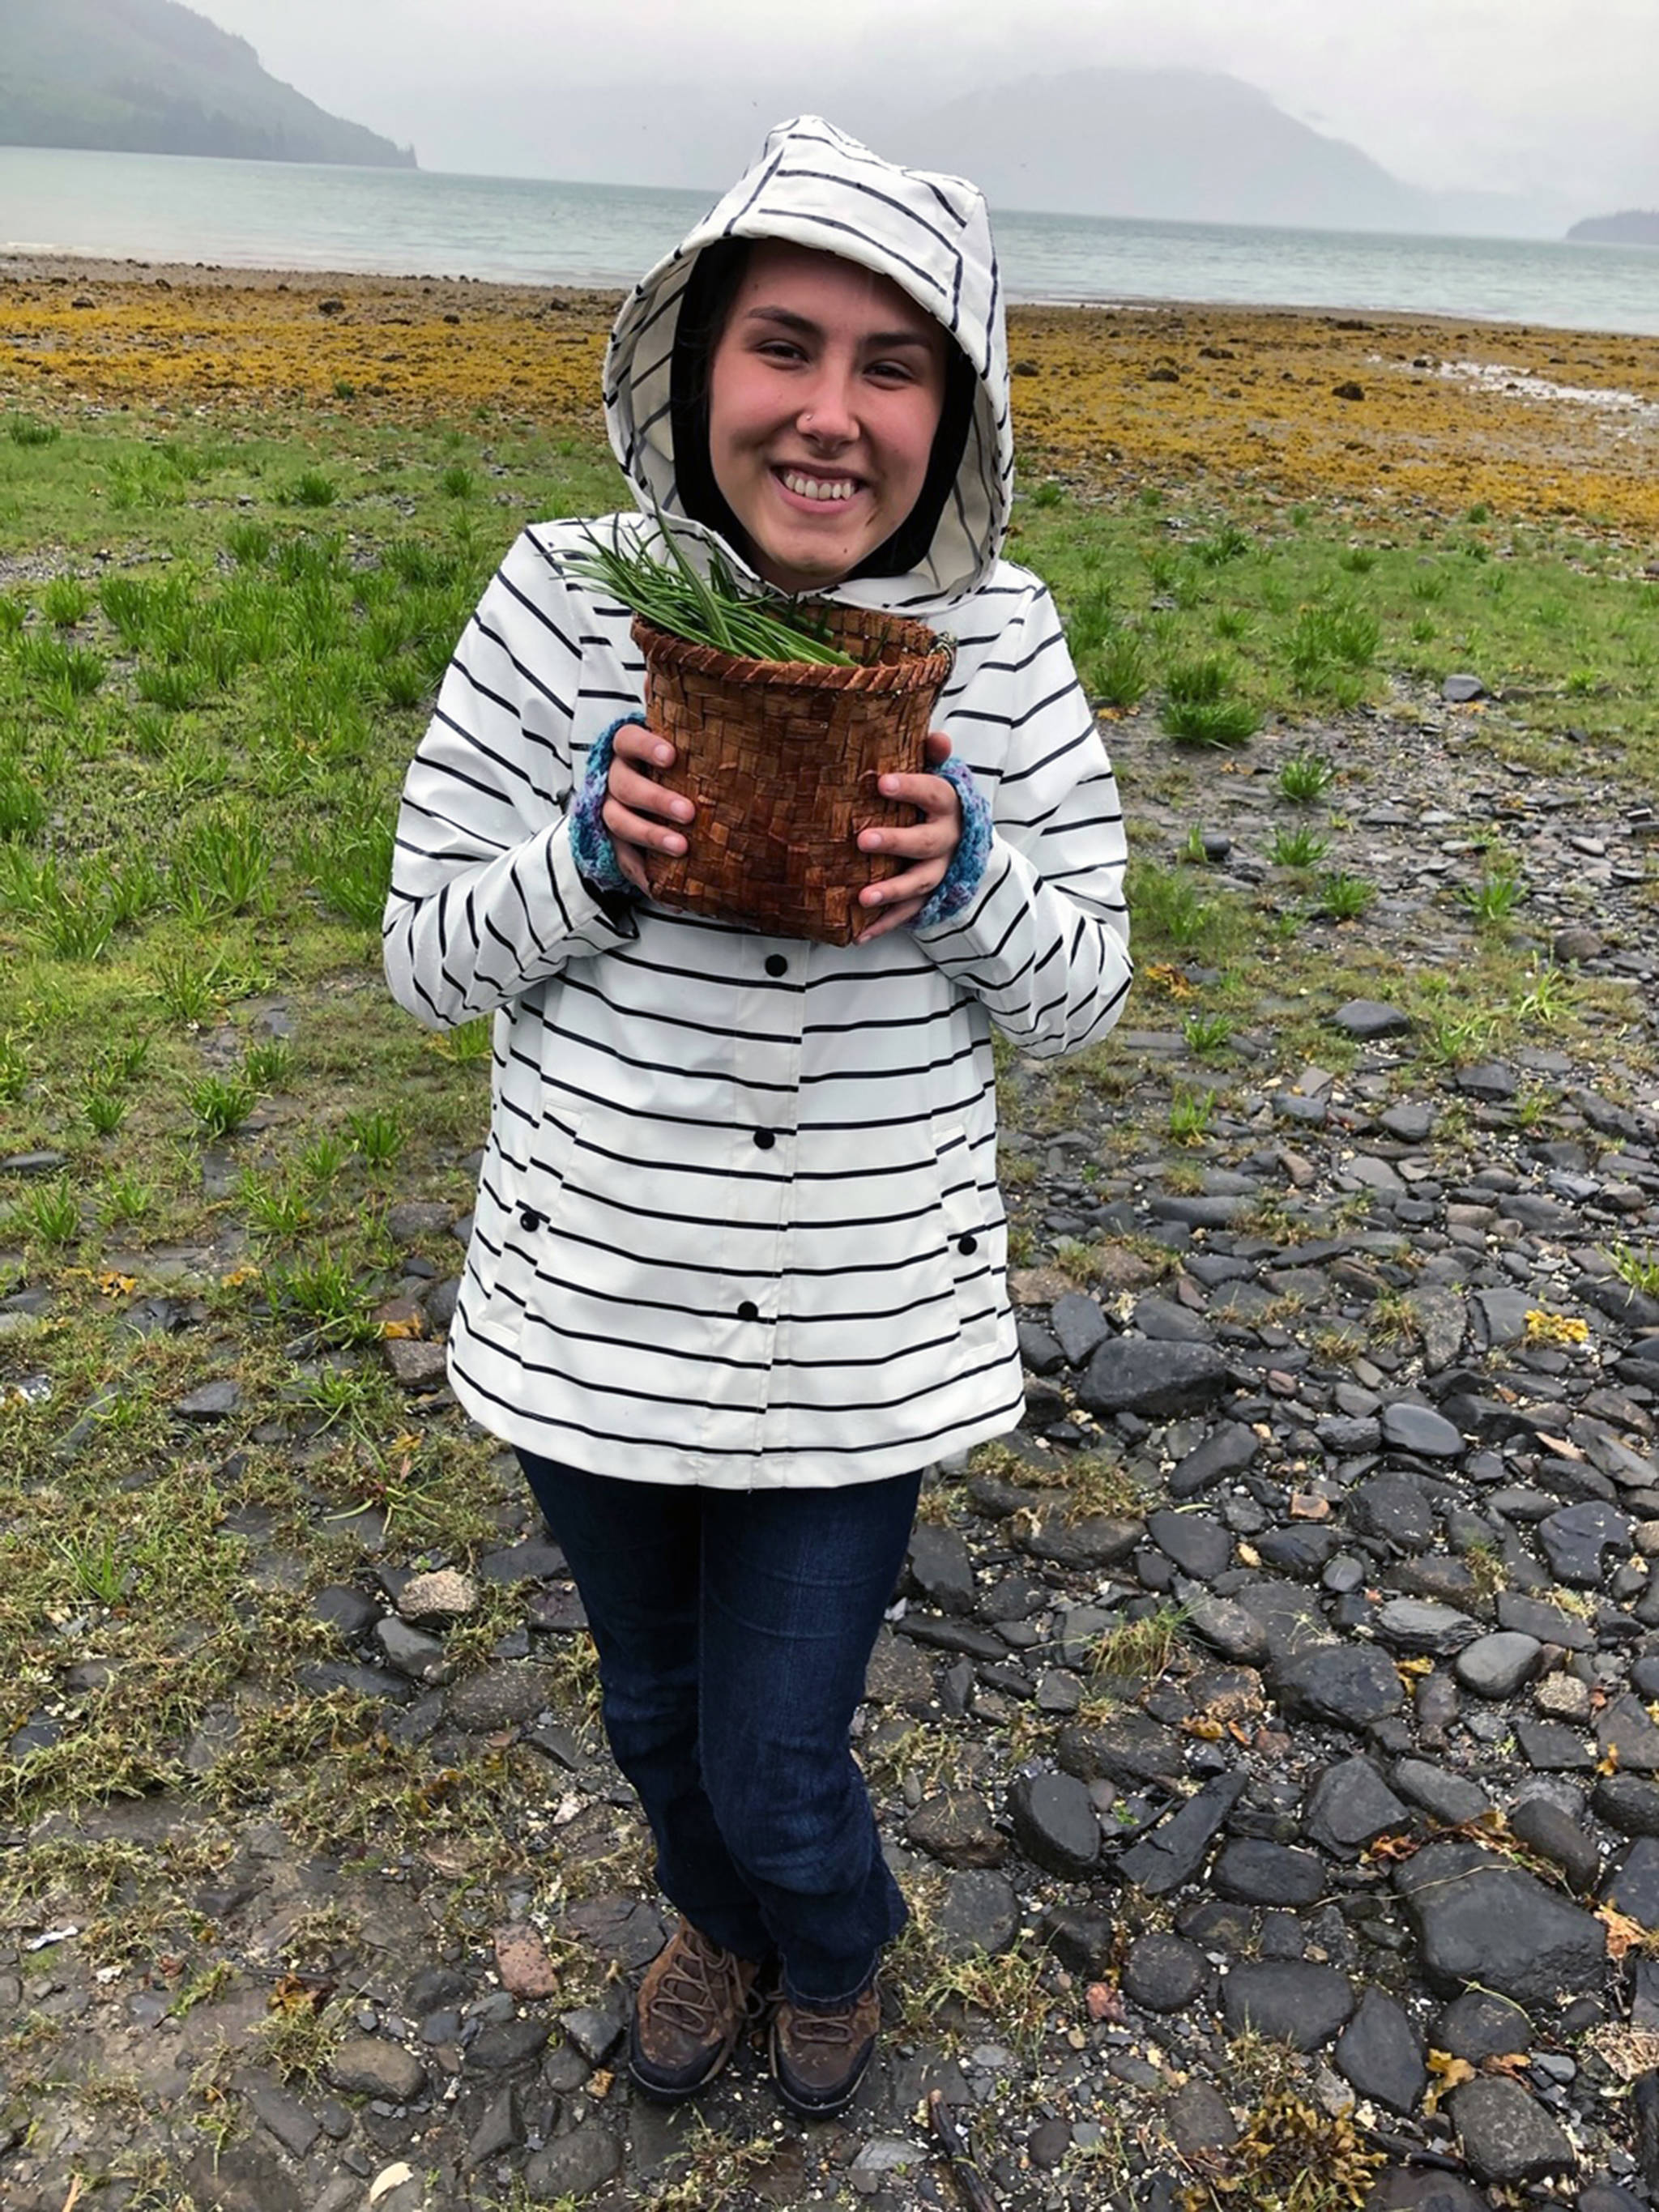 Maleah Wenzel harvests goose tongue while on summer break in Wrangell, June 11, 2019. (Courtesy photo | Vivian Faith Prescott)